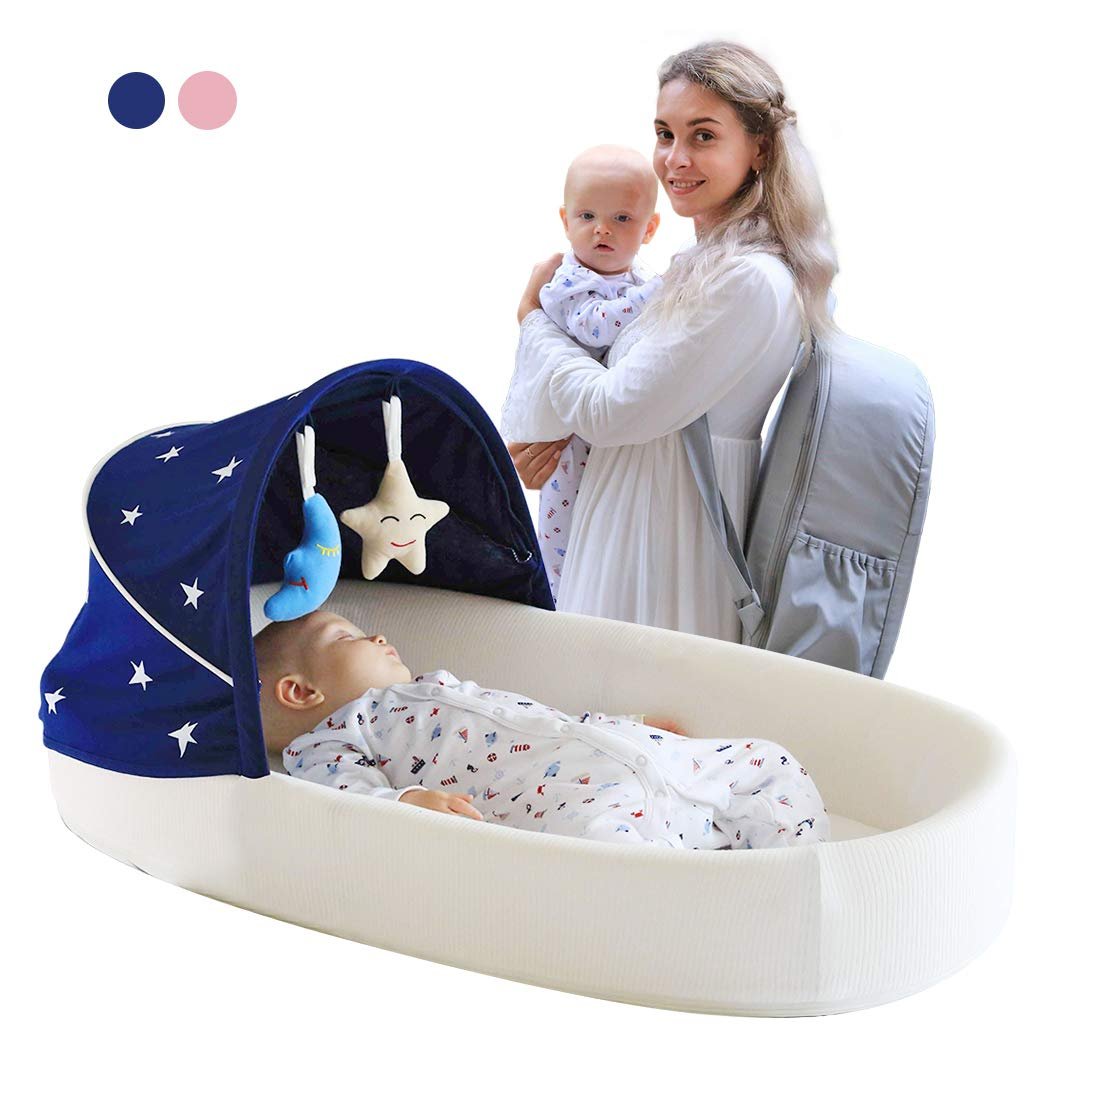 Top 10 Best Baby Lounger Pillow (2020 Reviews & Buying Guide) 6